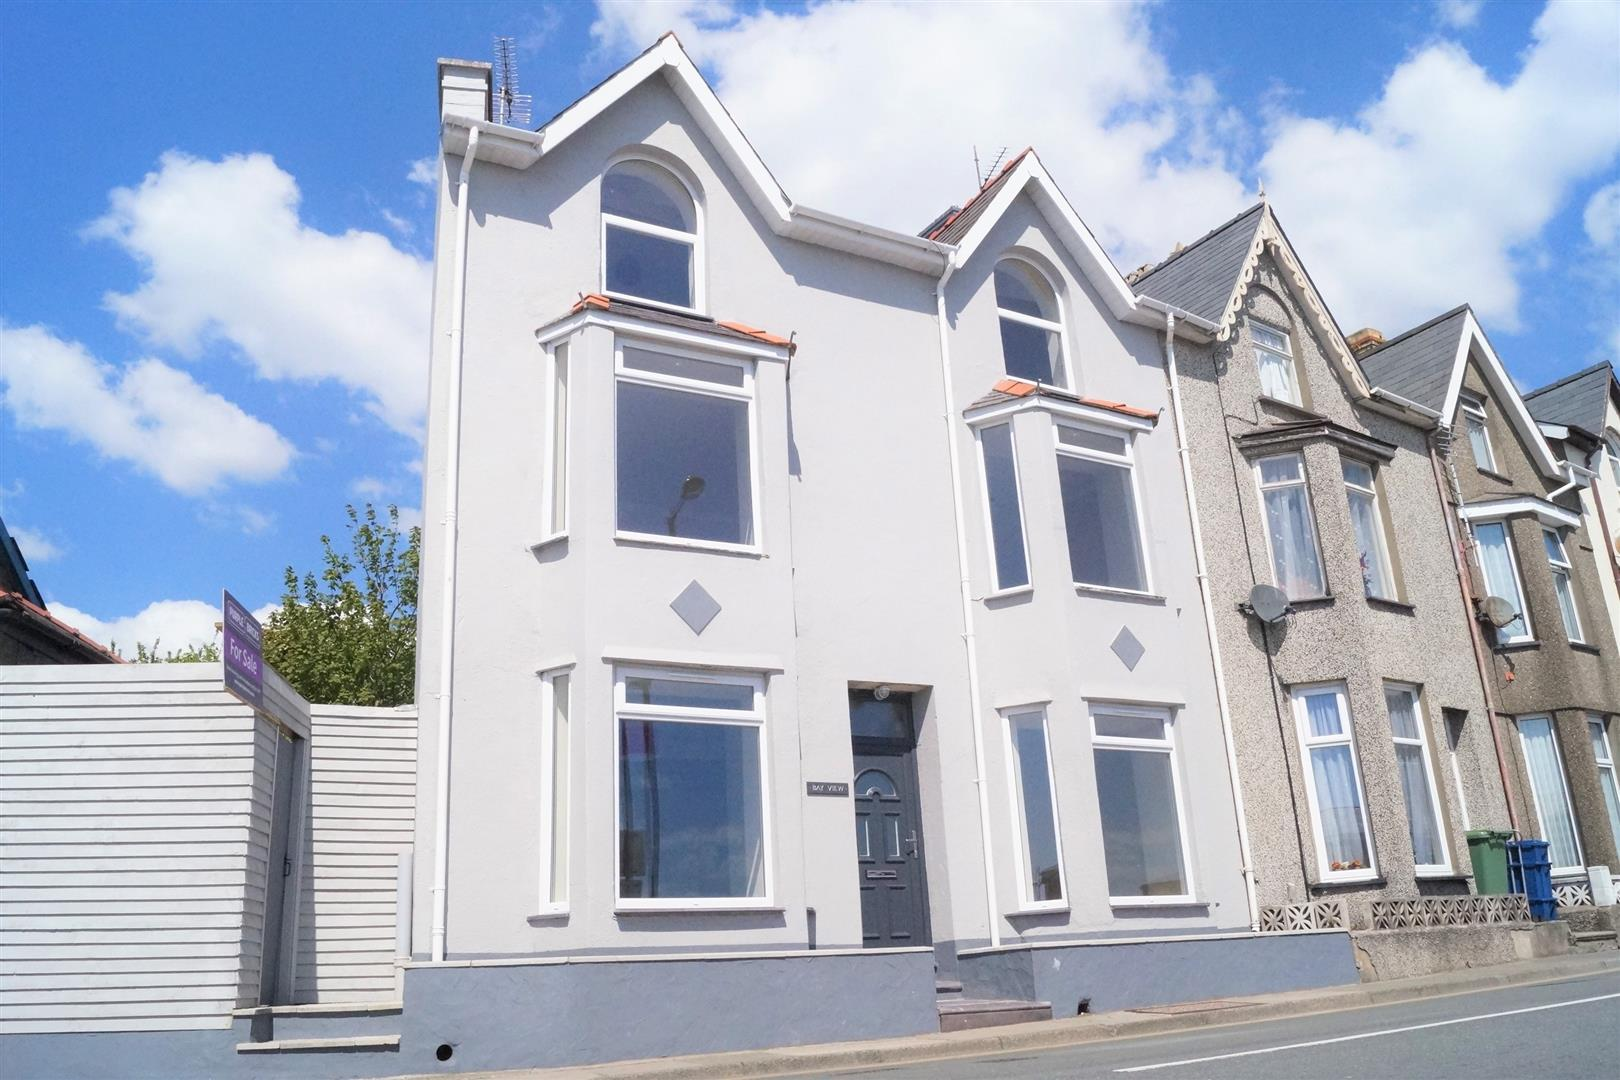 Bay View Terrace, Pwllheli